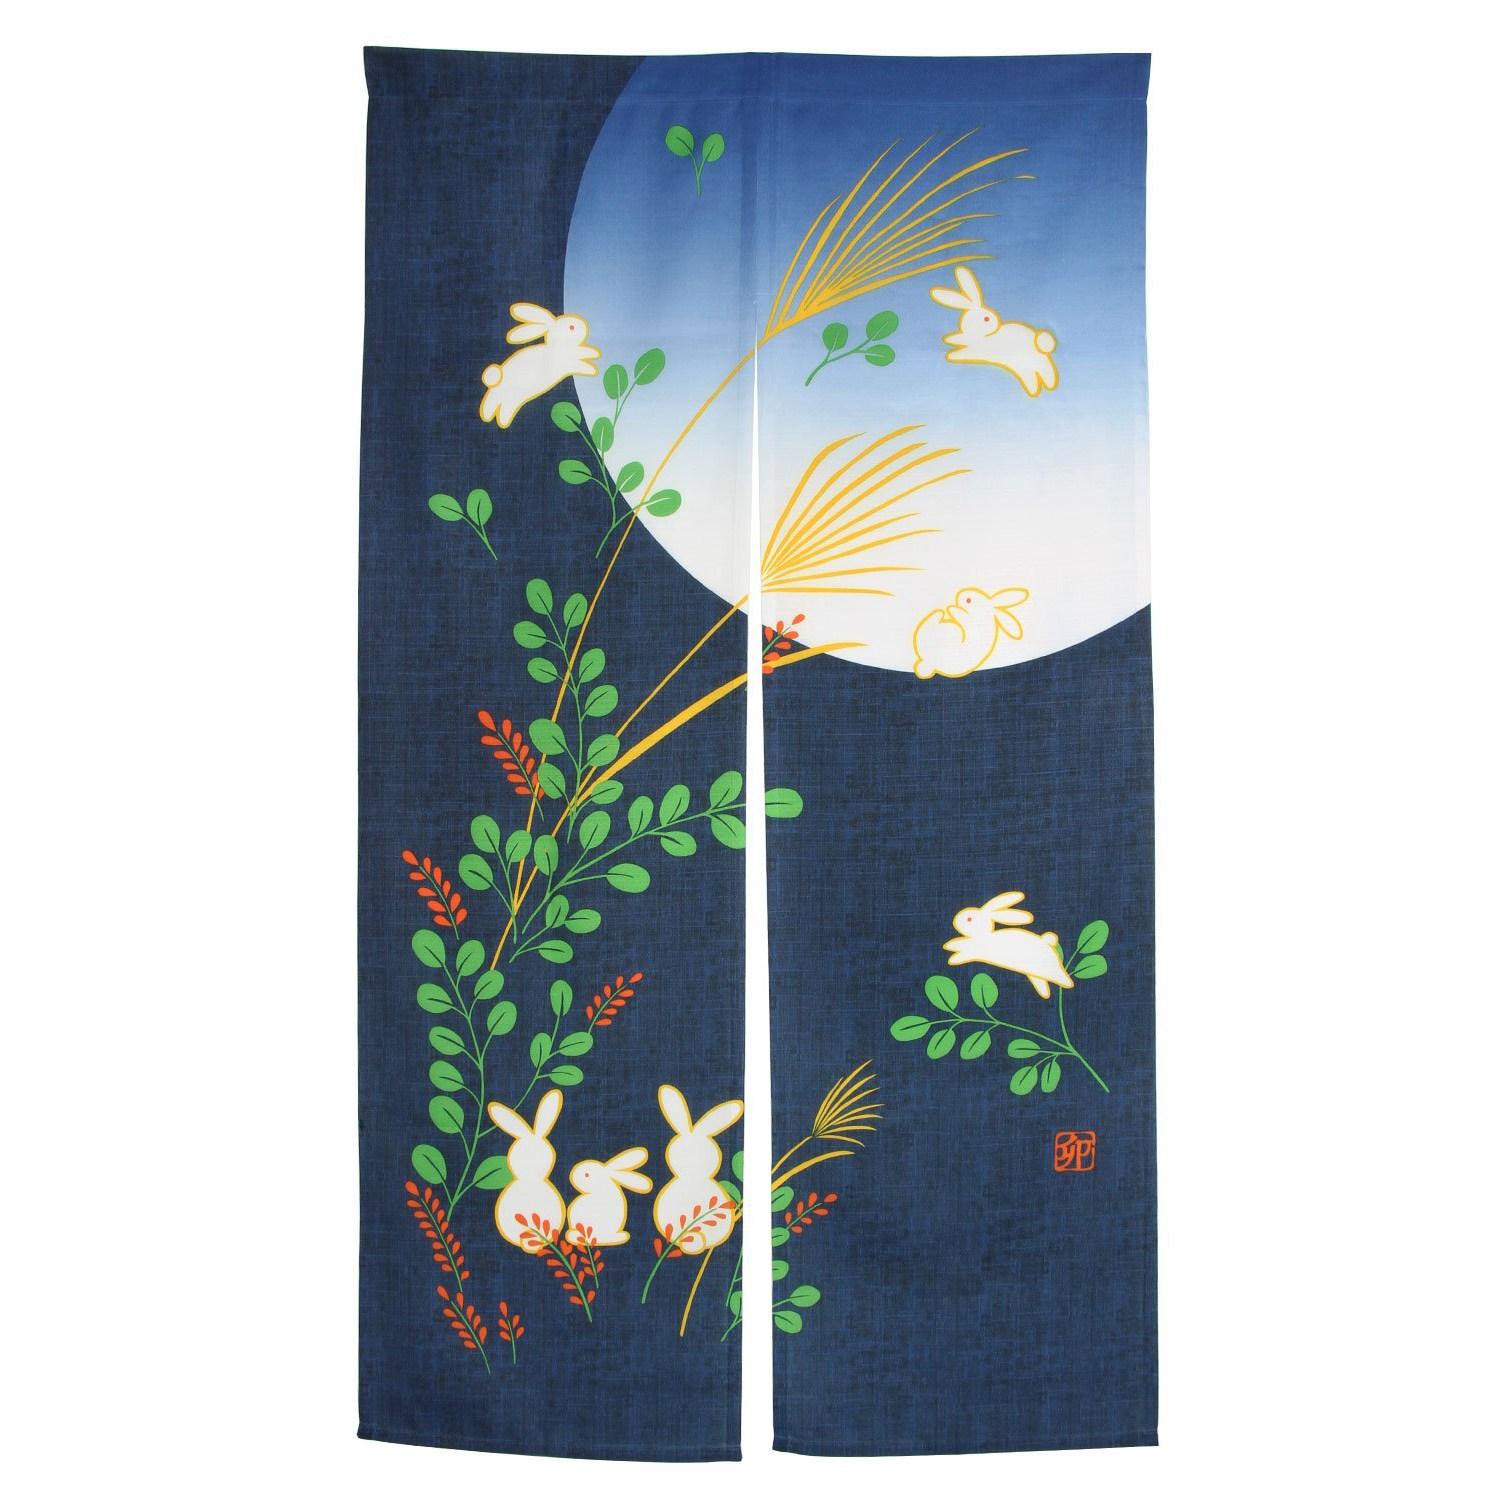 New-Japanese Doorway Curtain Noren Rabbit Under Moon For Home Decoration 85X150Cm